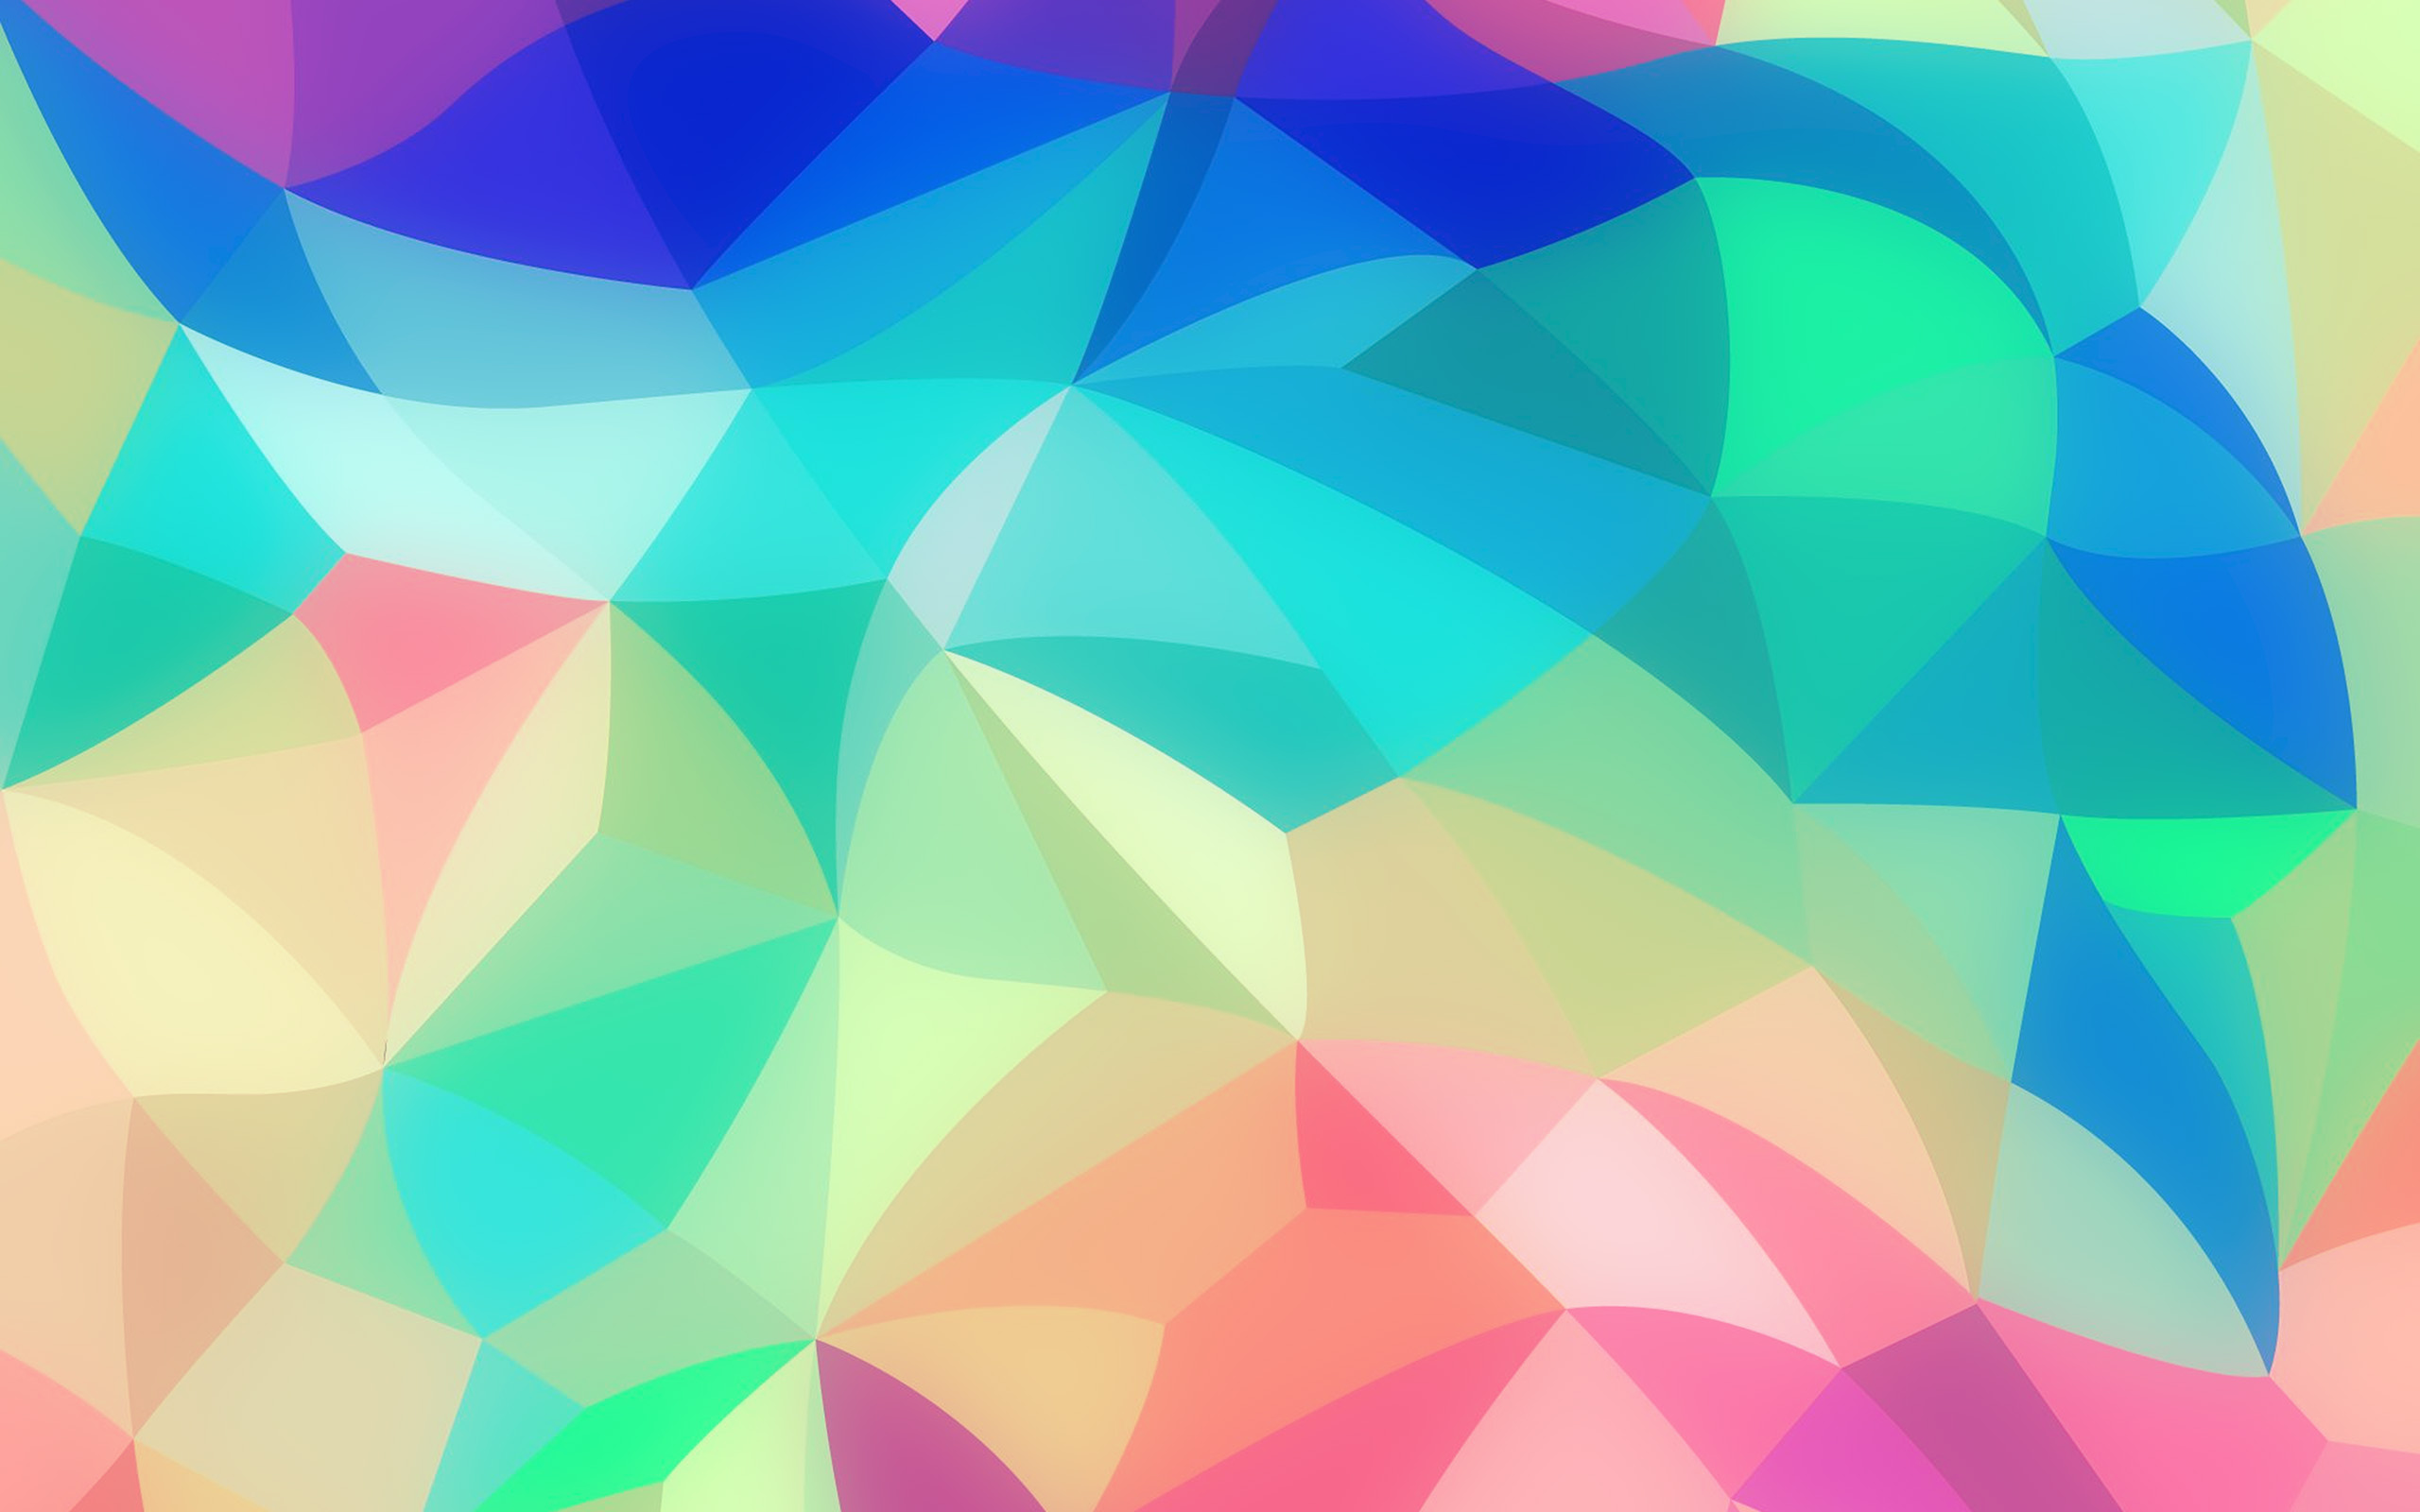 Basic Iphone Wallpaper I Love Papers Vk41 Rainbow Abstract Colors Pastel Soft